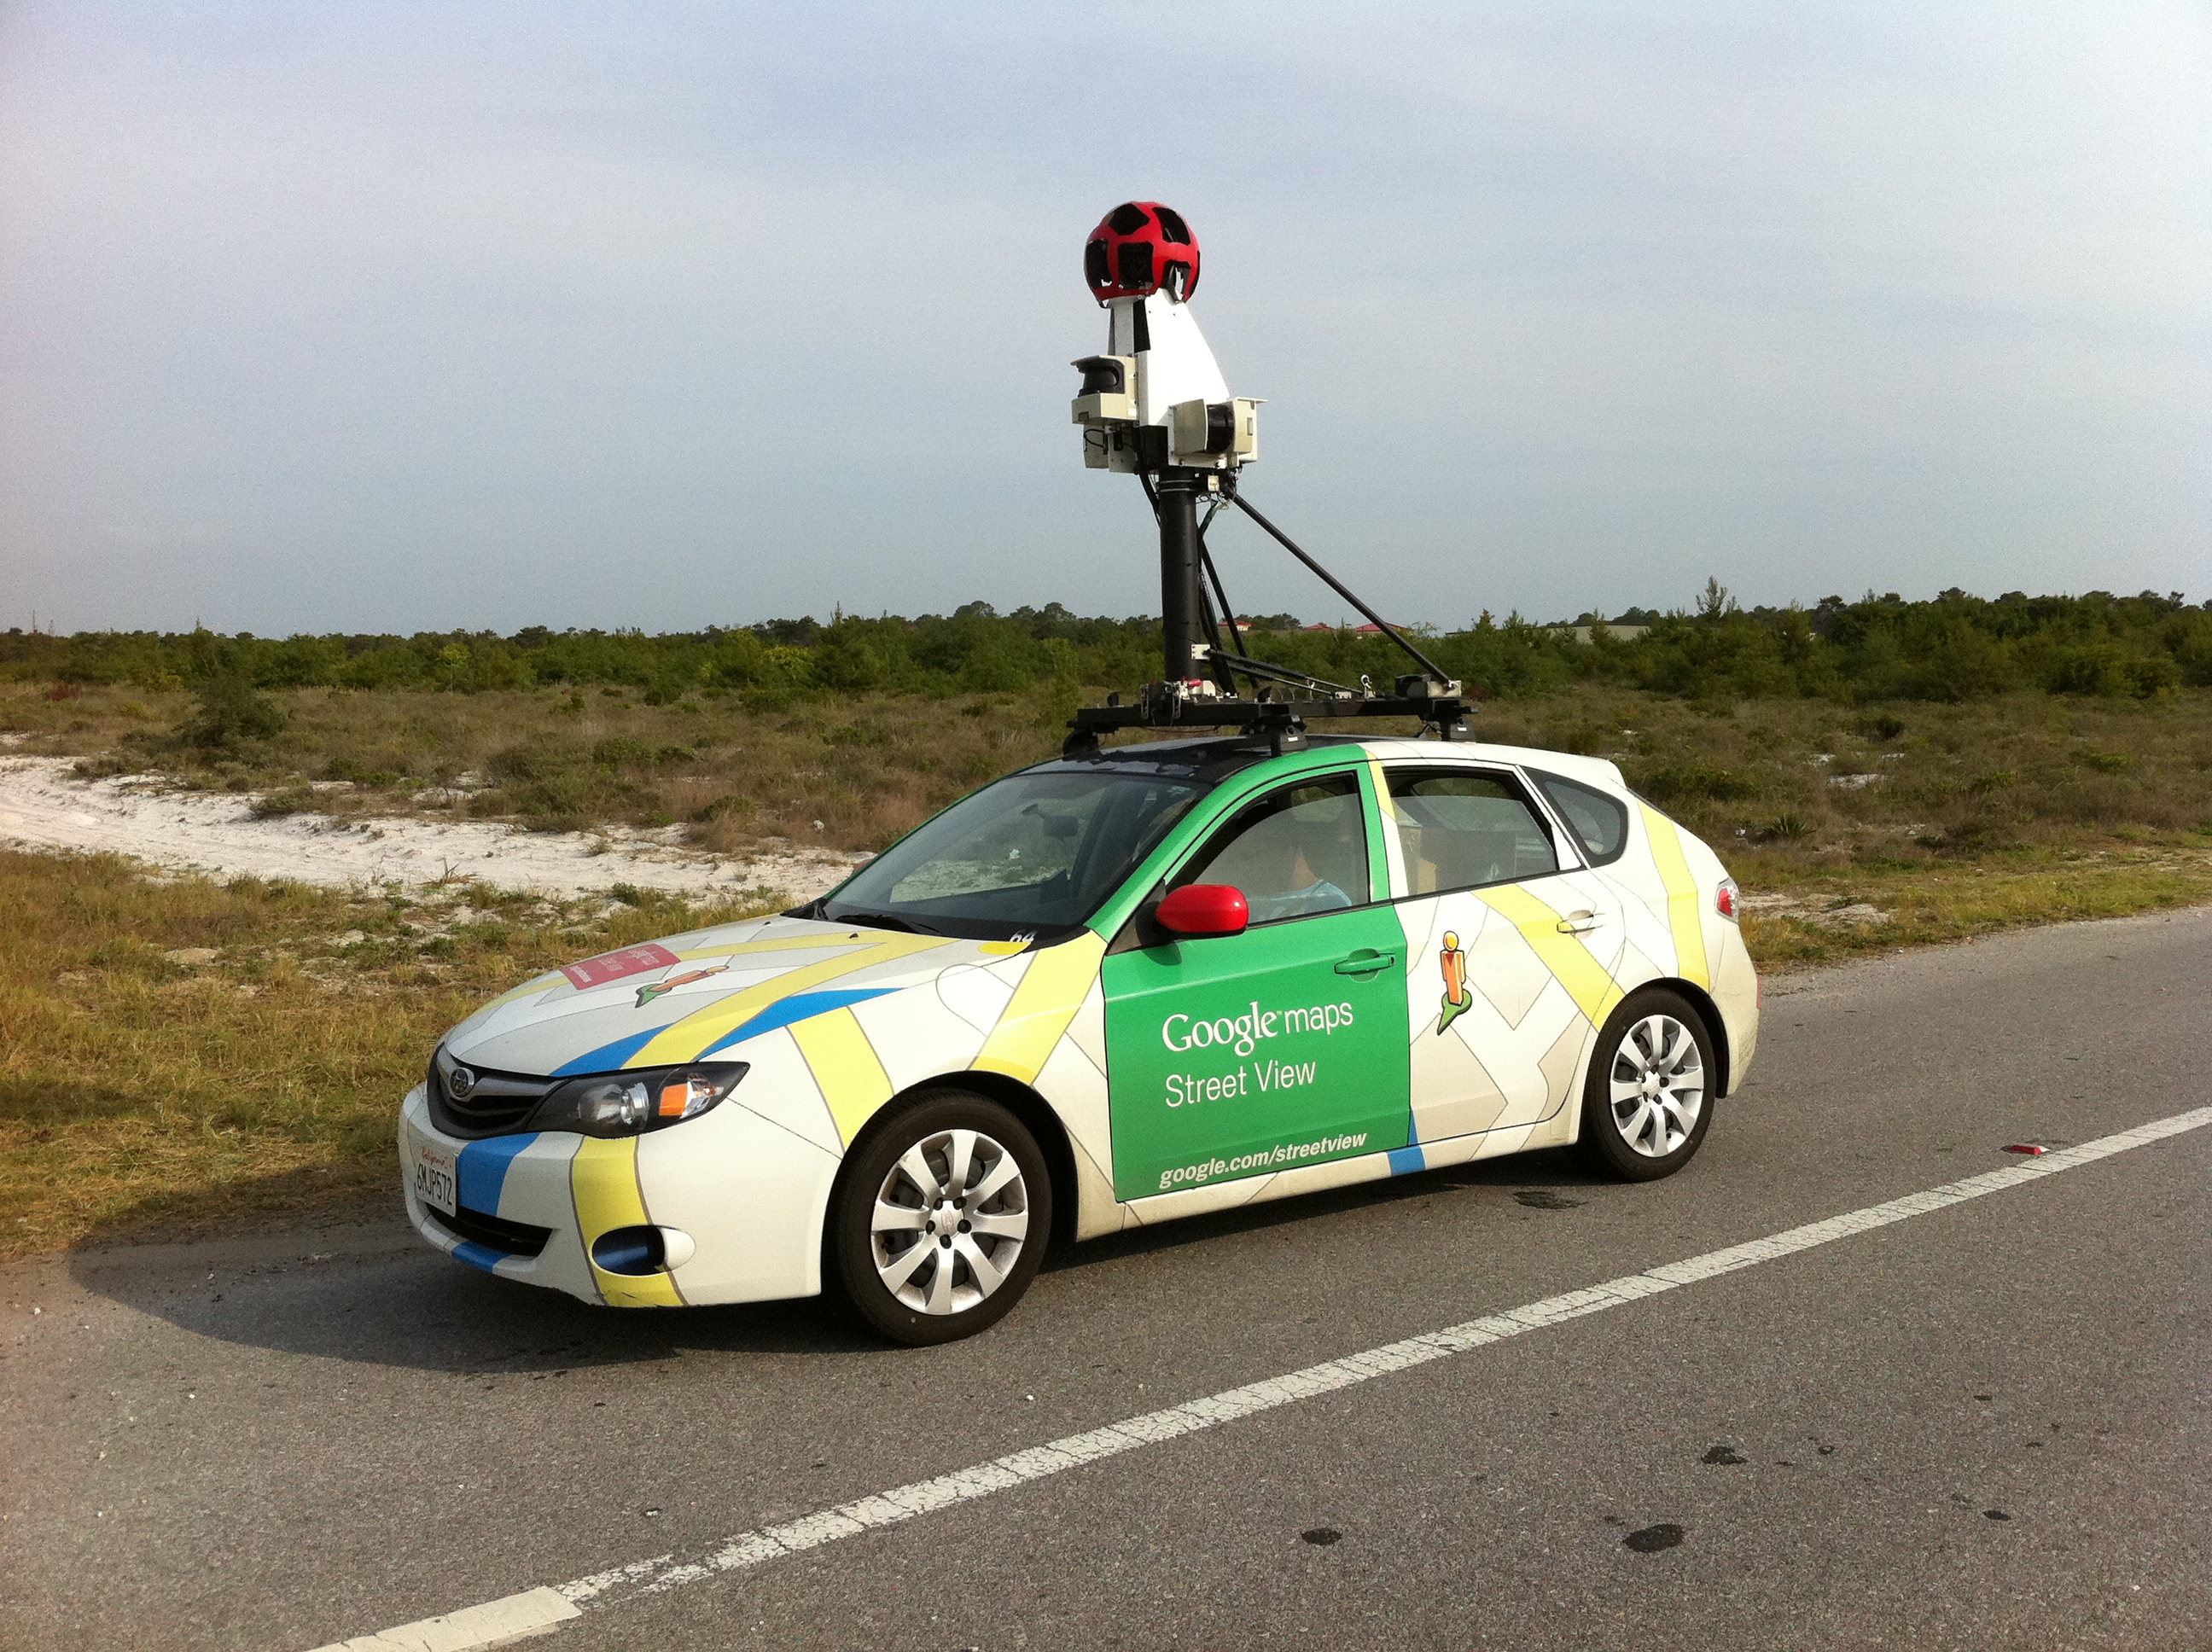 Google Street View images are about to get a lot clearer